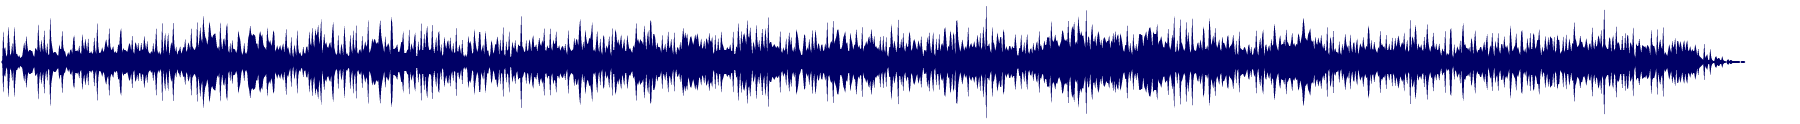 waveform of track #70058